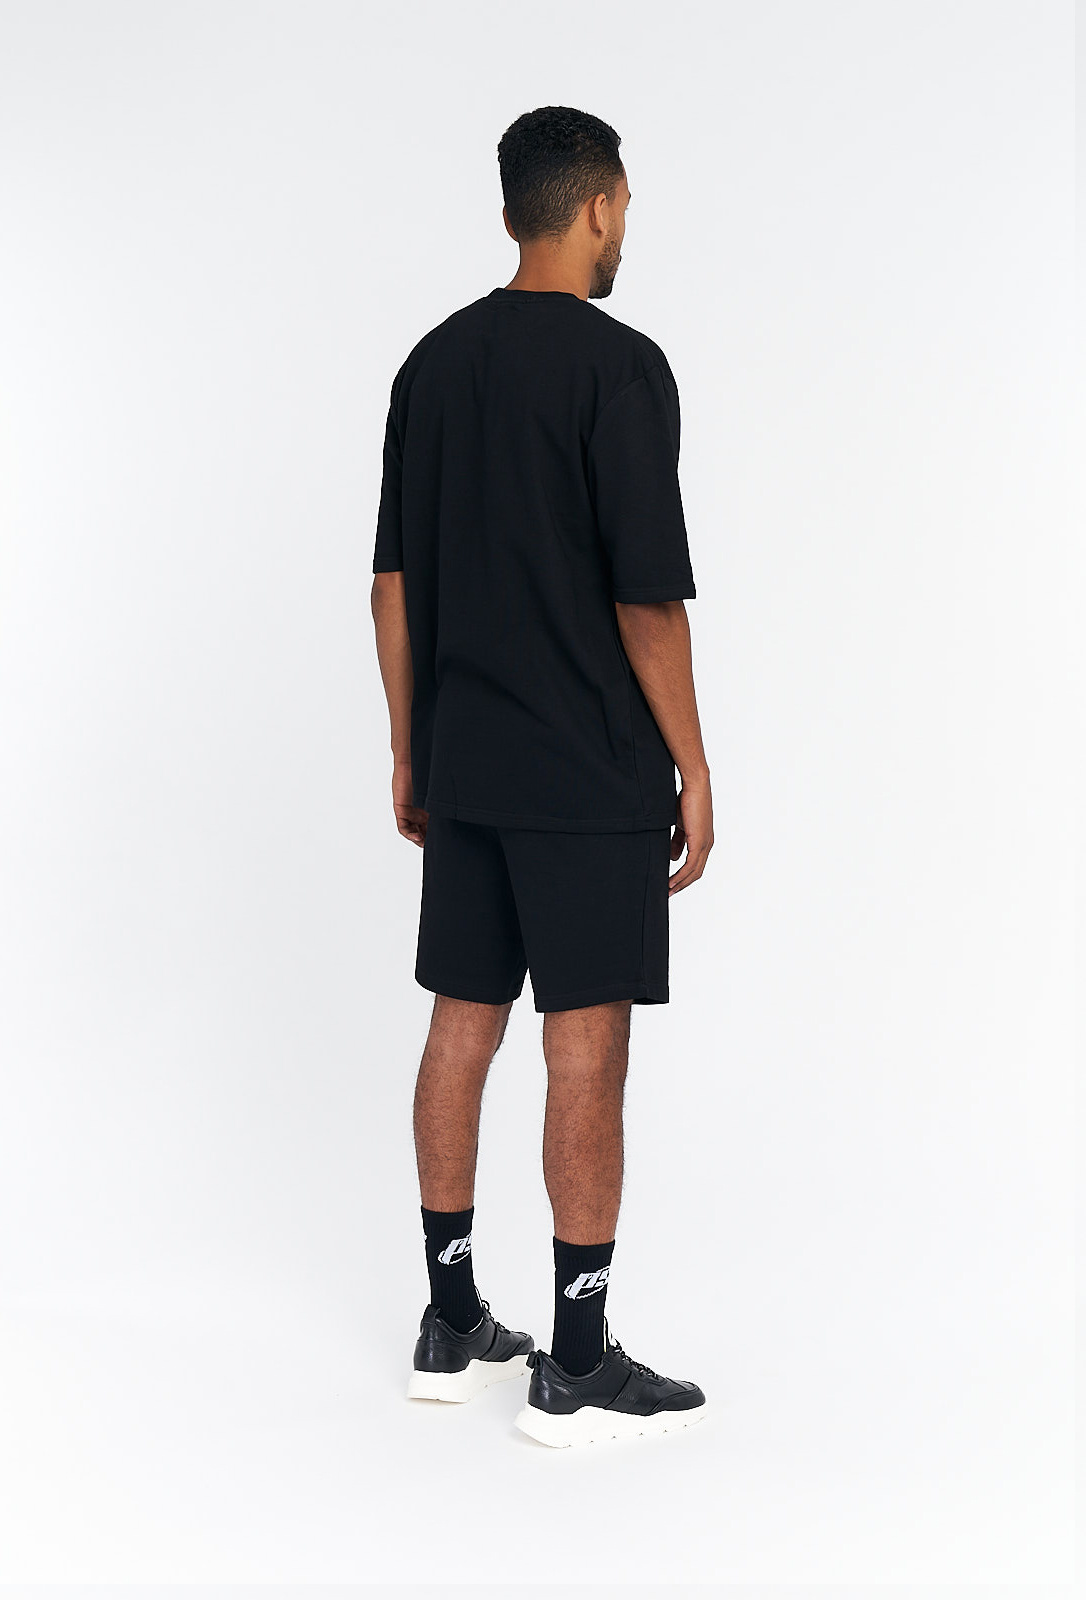 PS Black Explore T-shirt